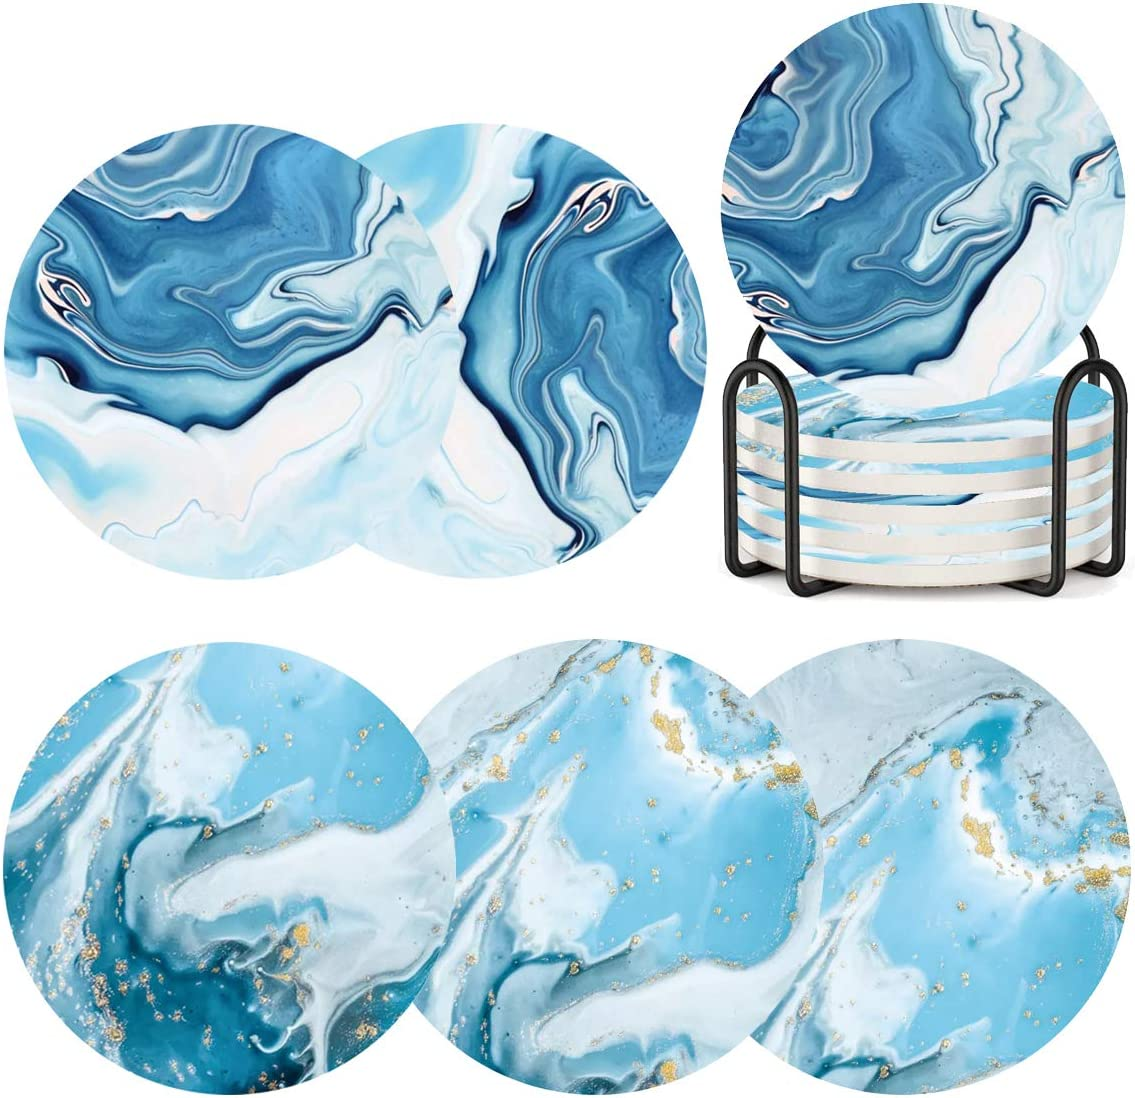 Coasters for Drinks with Holder,Marble Ocean Pattern Ceramic Absorbent Coasters with Cork Base,Prevent Table Scratched and Absorb Water Stains,Xmas Housewarming Gifts Pack of 6